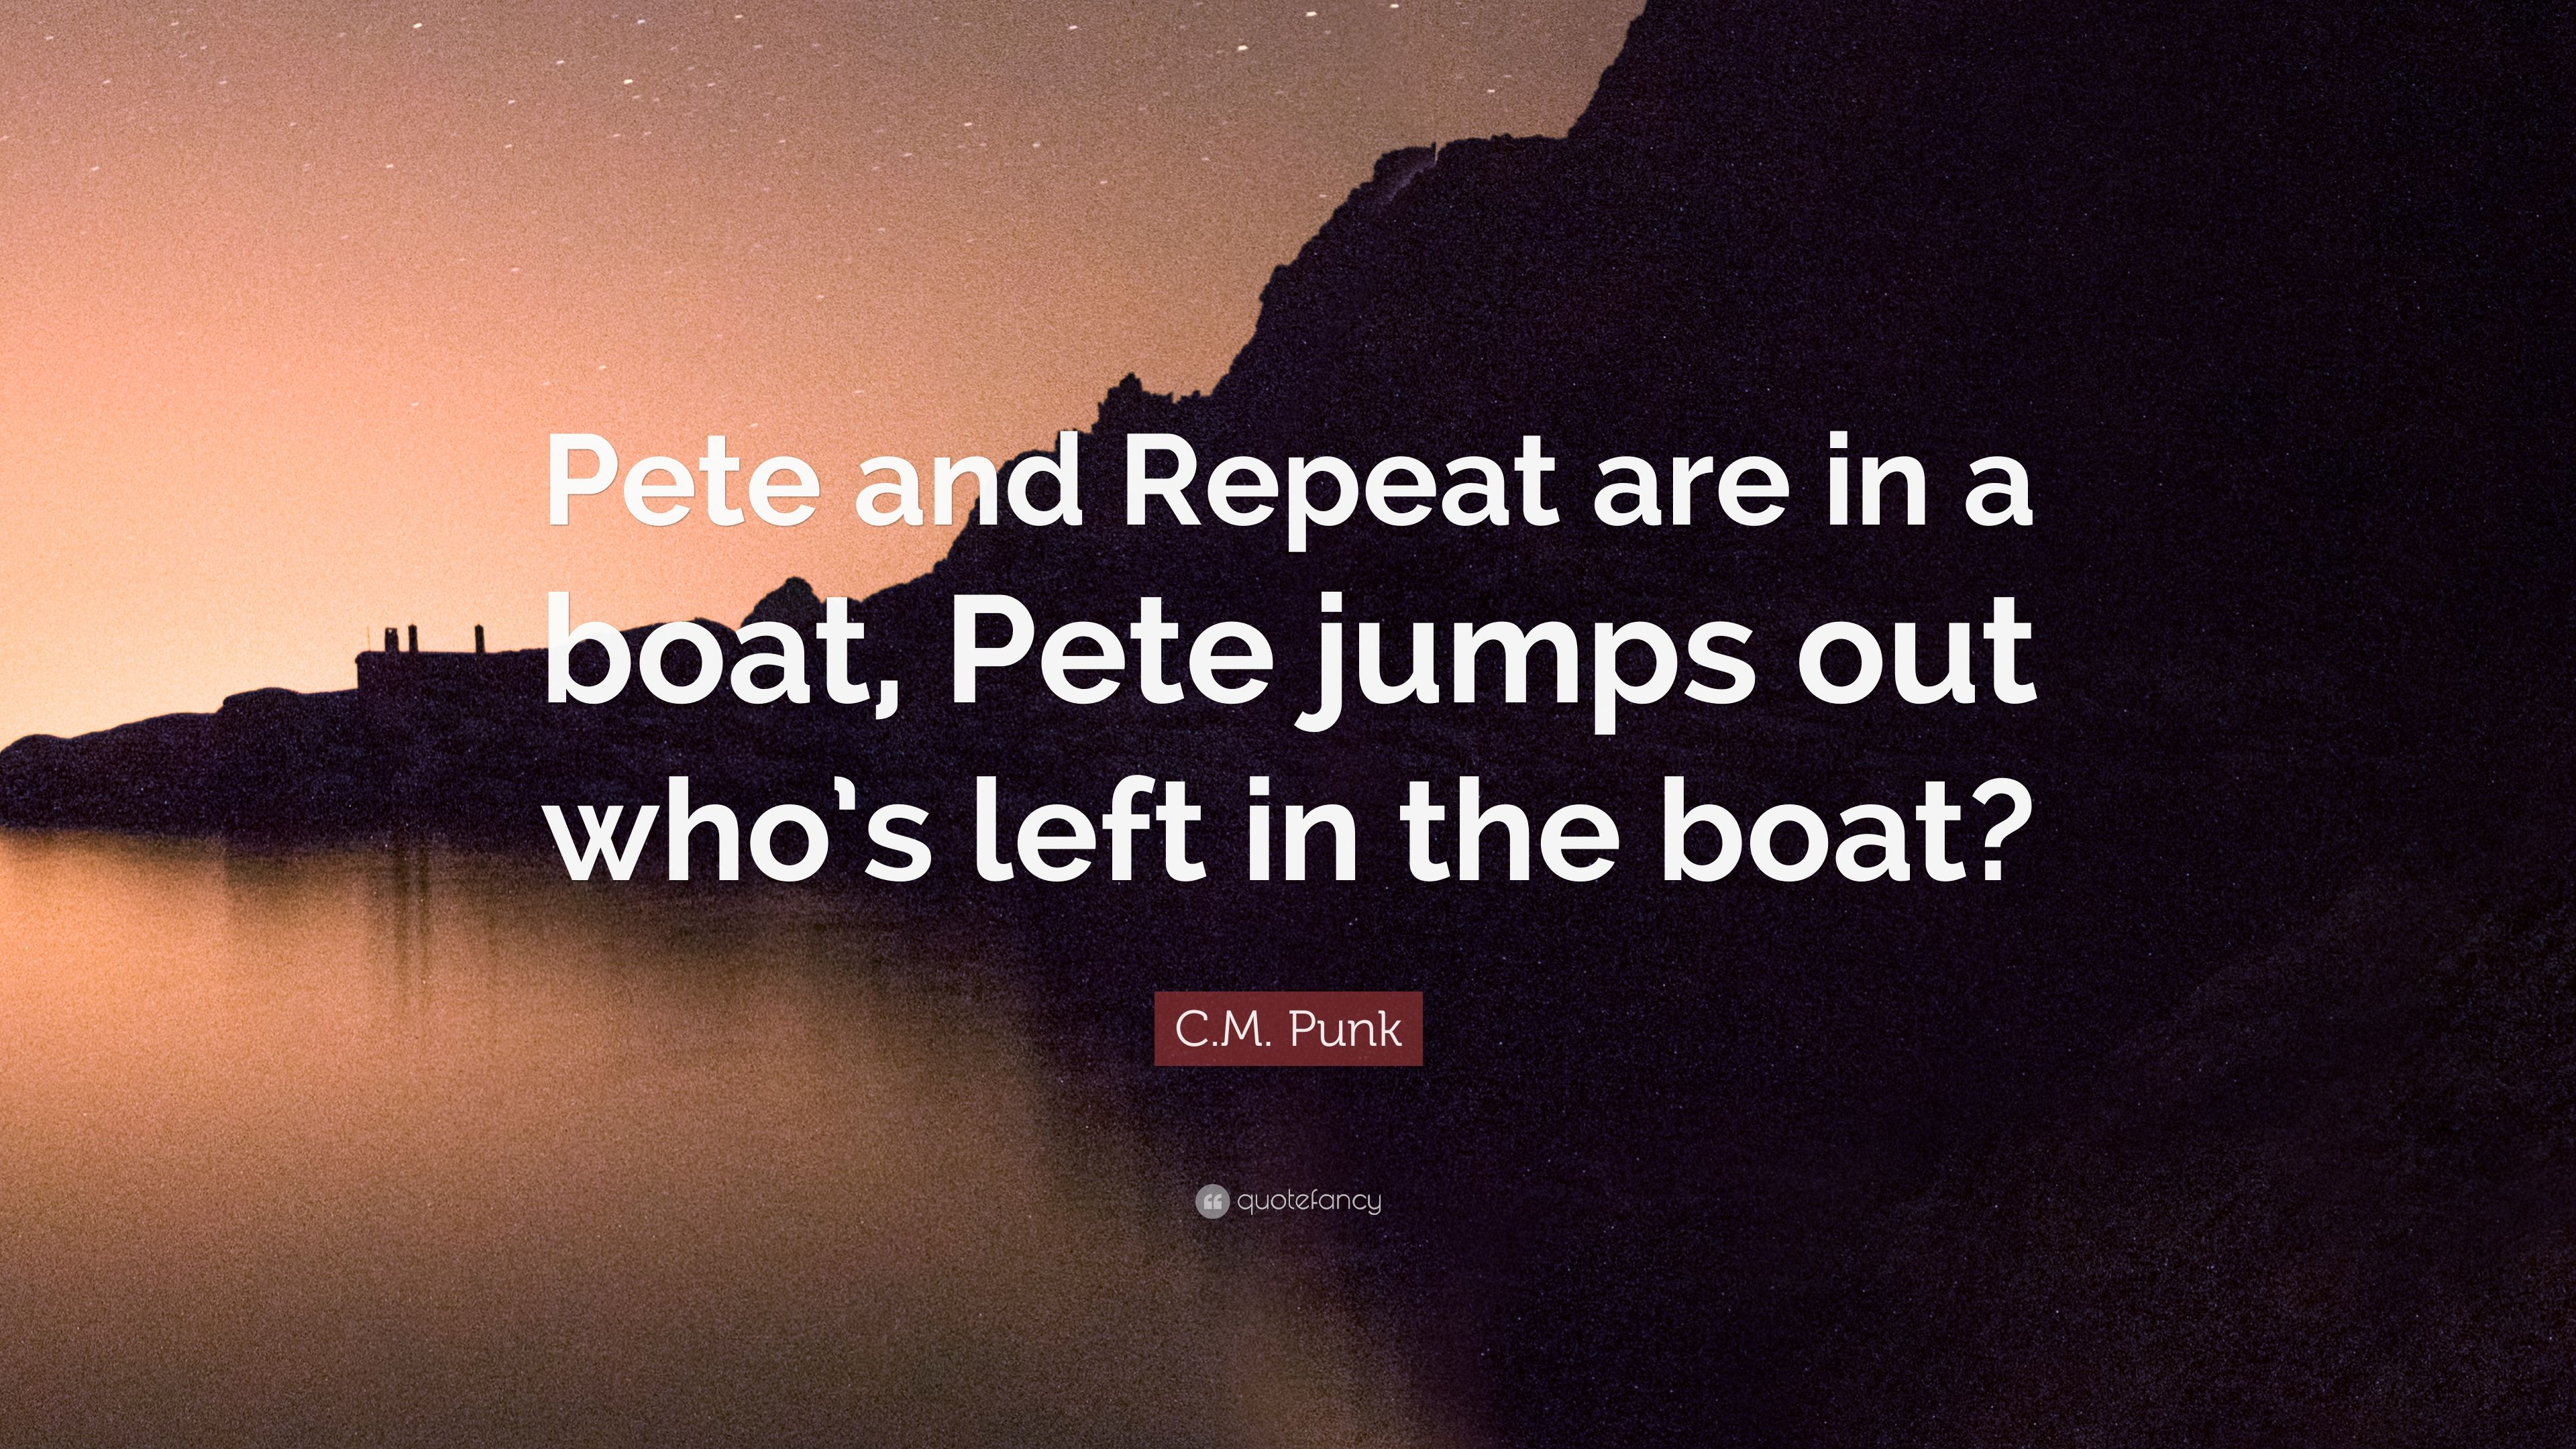 Cm punk quote pete and repeat are in a boat pete jumps out cm punk quote pete and repeat are in a boat pete jumps out voltagebd Images